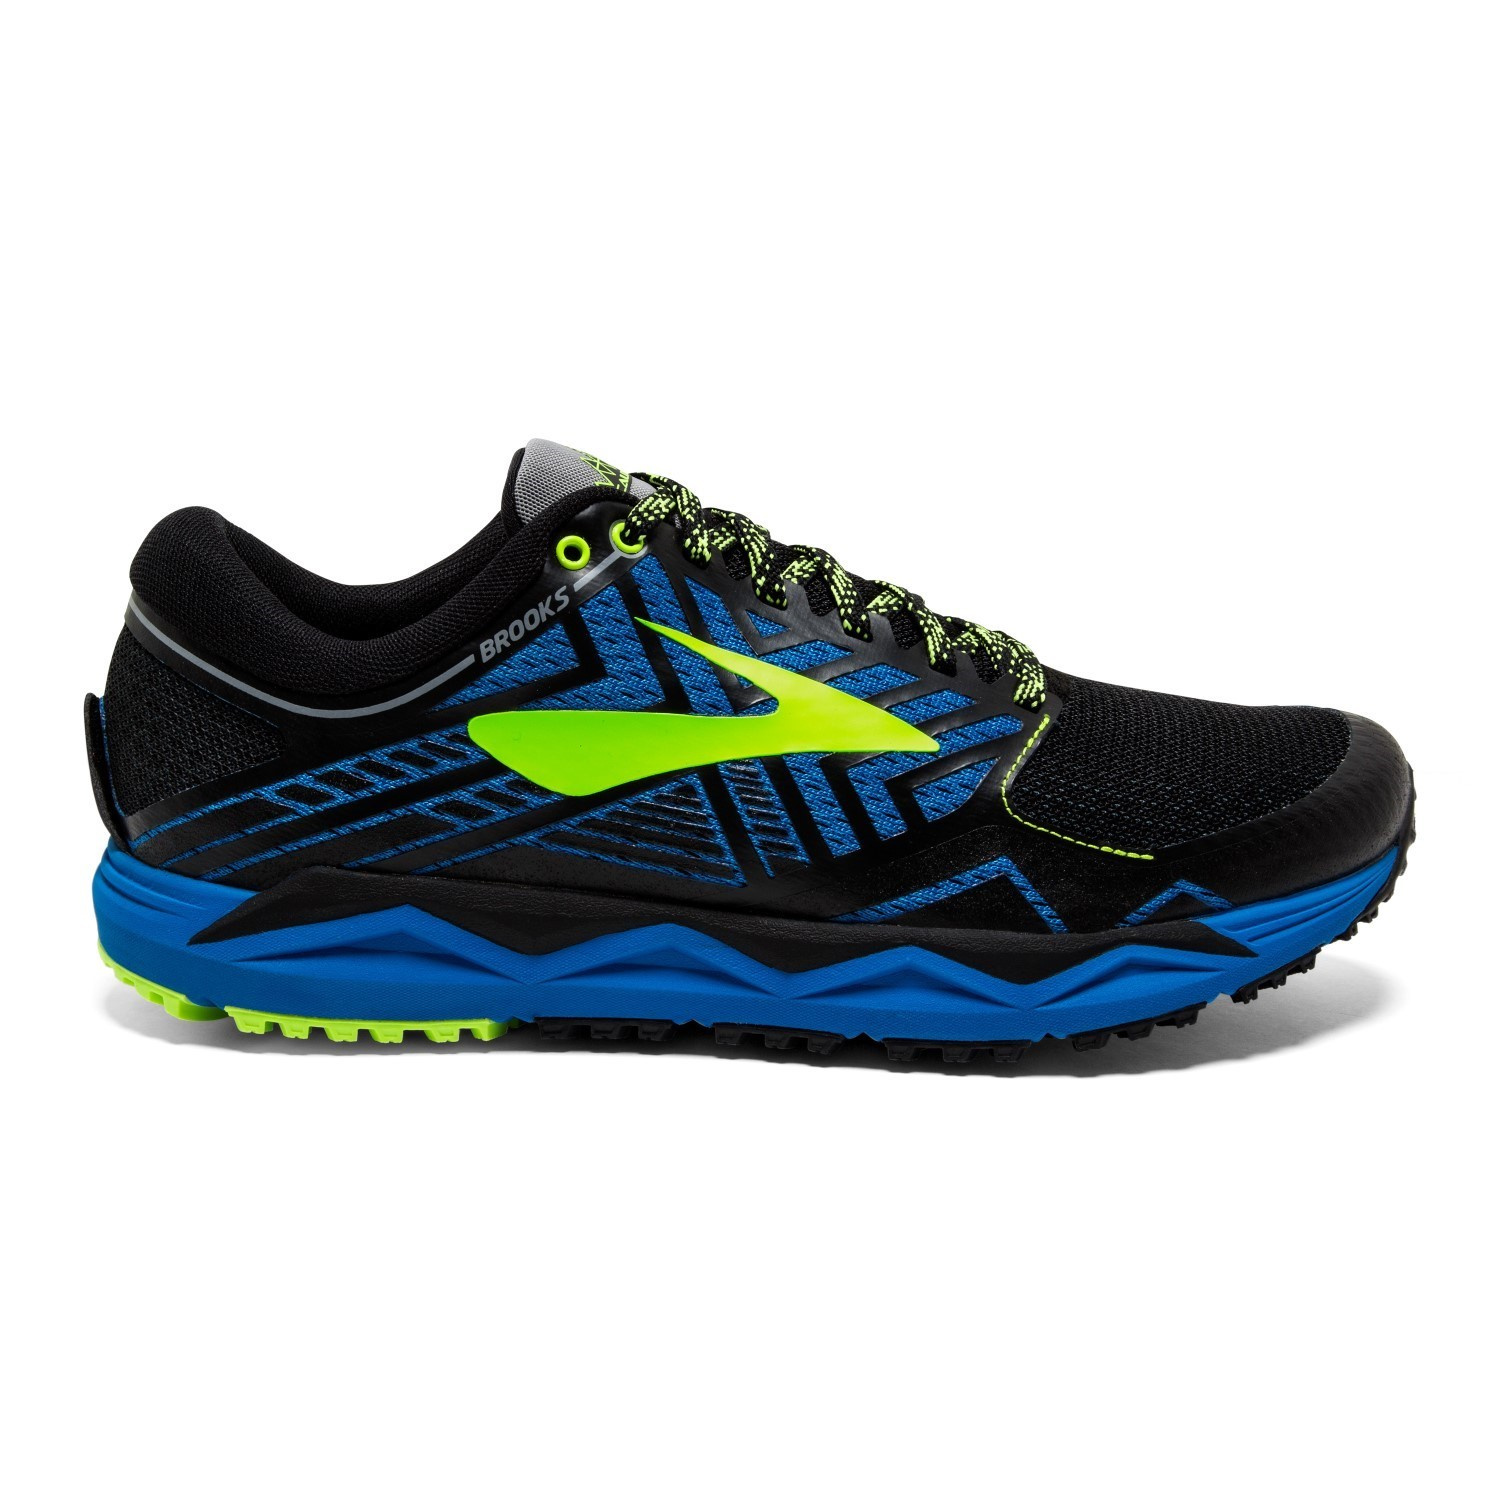 506d1852330 Brooks Caldera 2 - Mens Trail Running Shoes - Blue Black Lime ...